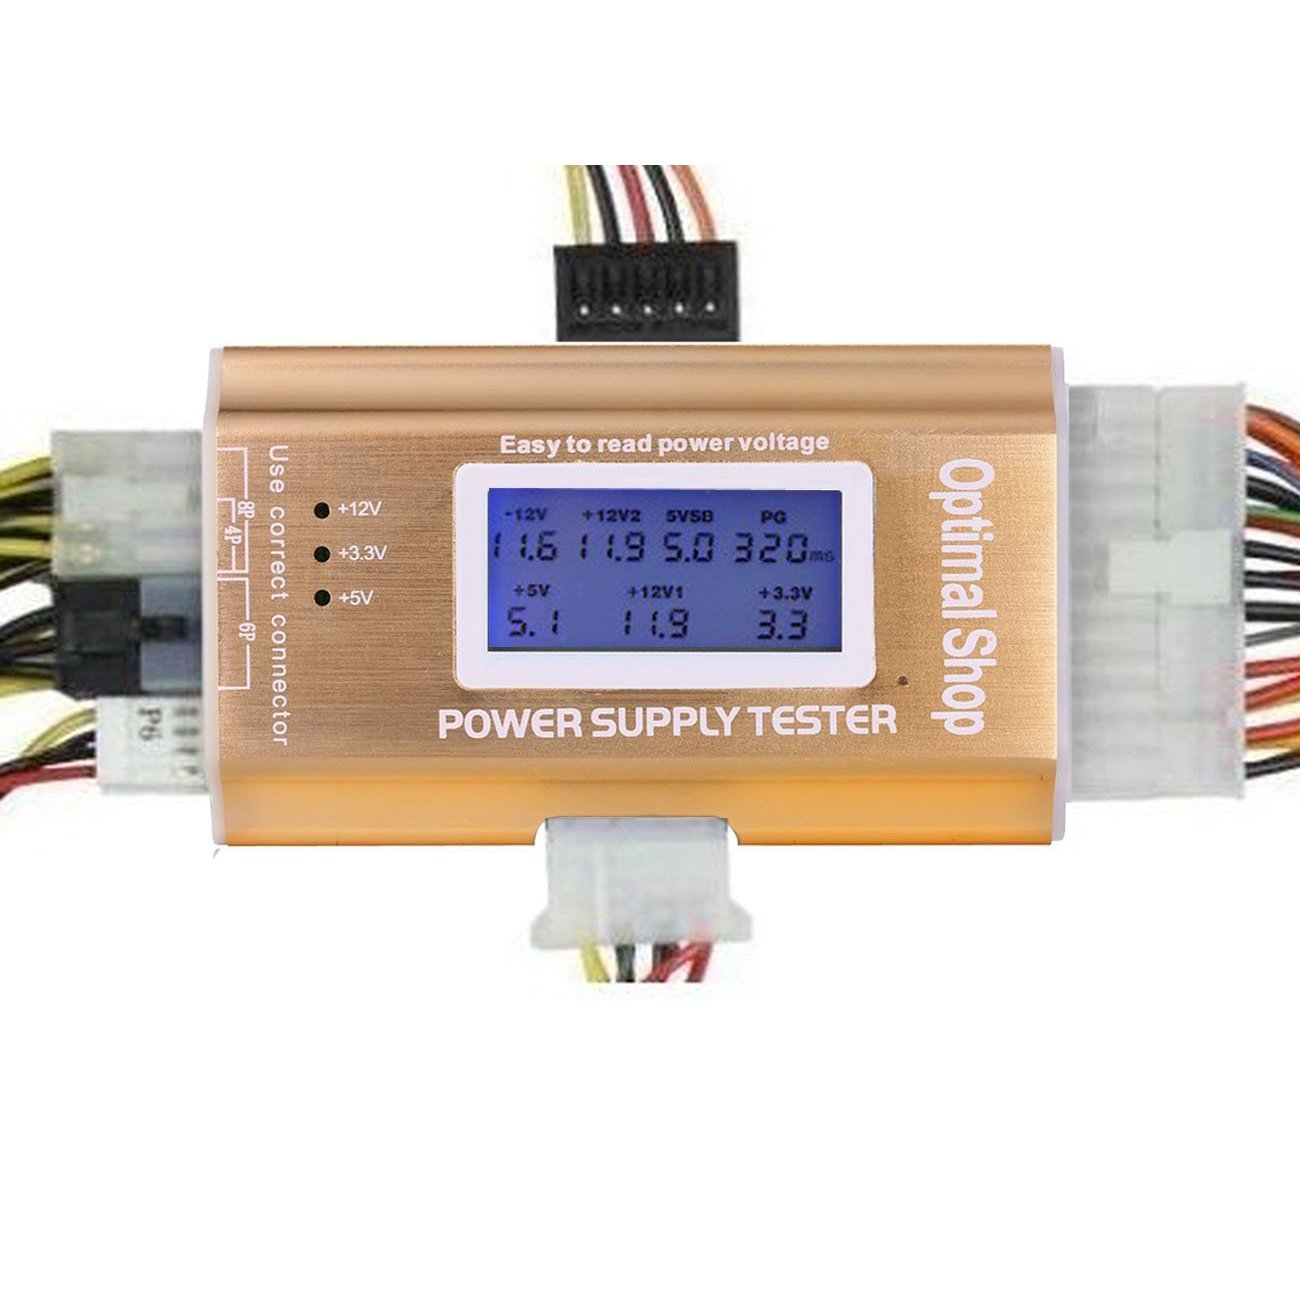 Optimal Shop 20/24 4/6/8 PIN 1.8'' LCD Computer PC Power Supply Tester -Golden